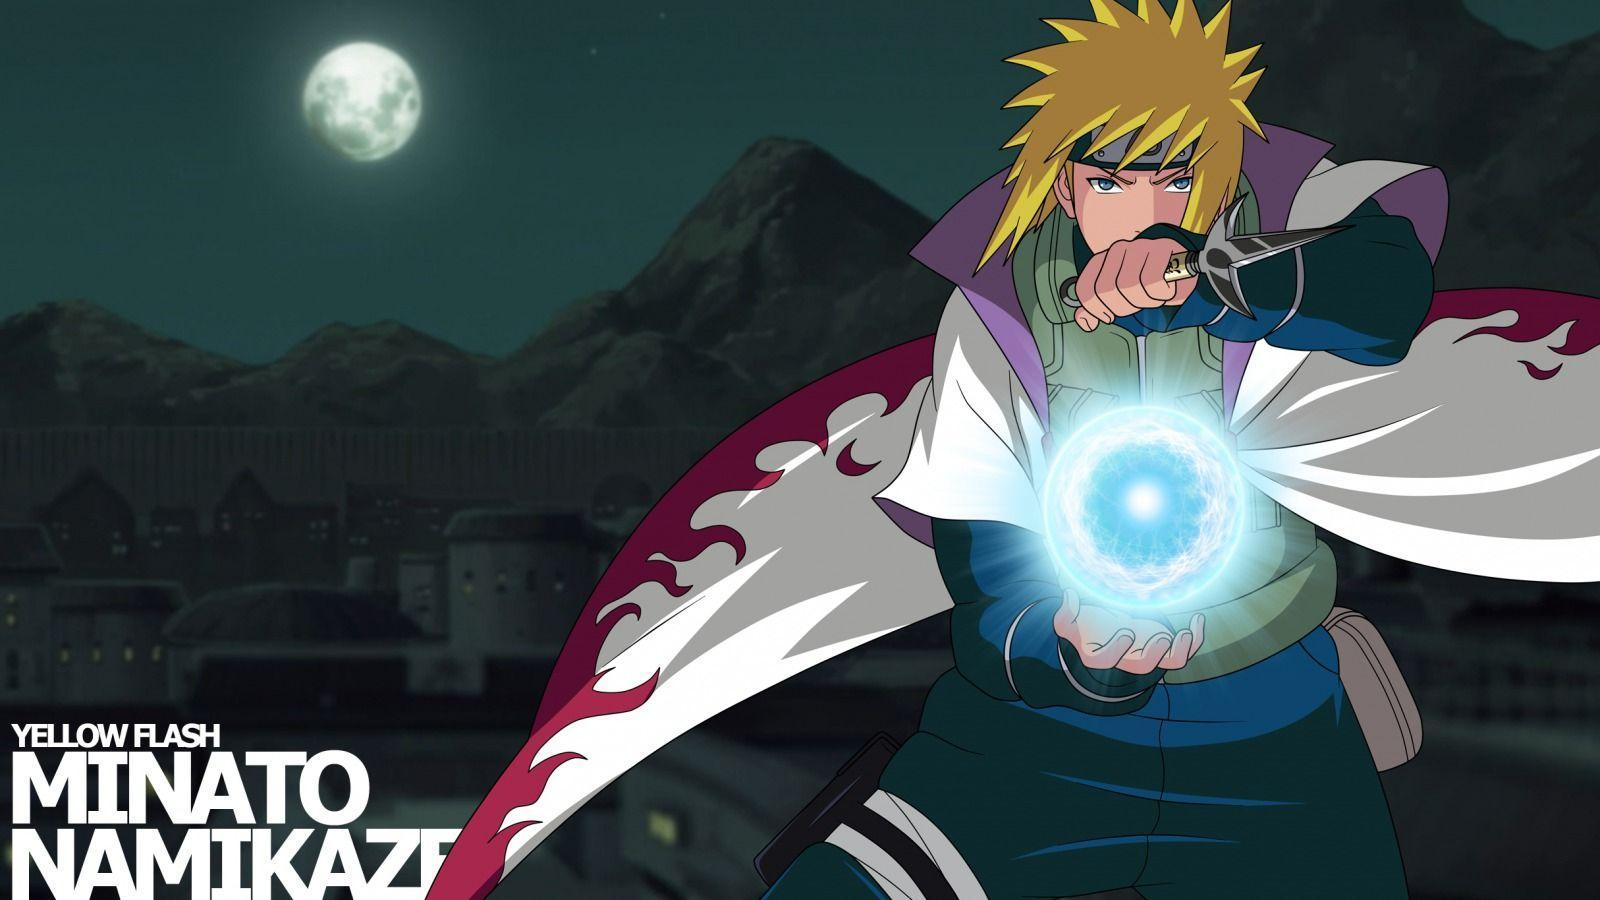 minato yellow flash wallpaper hd - photo #2